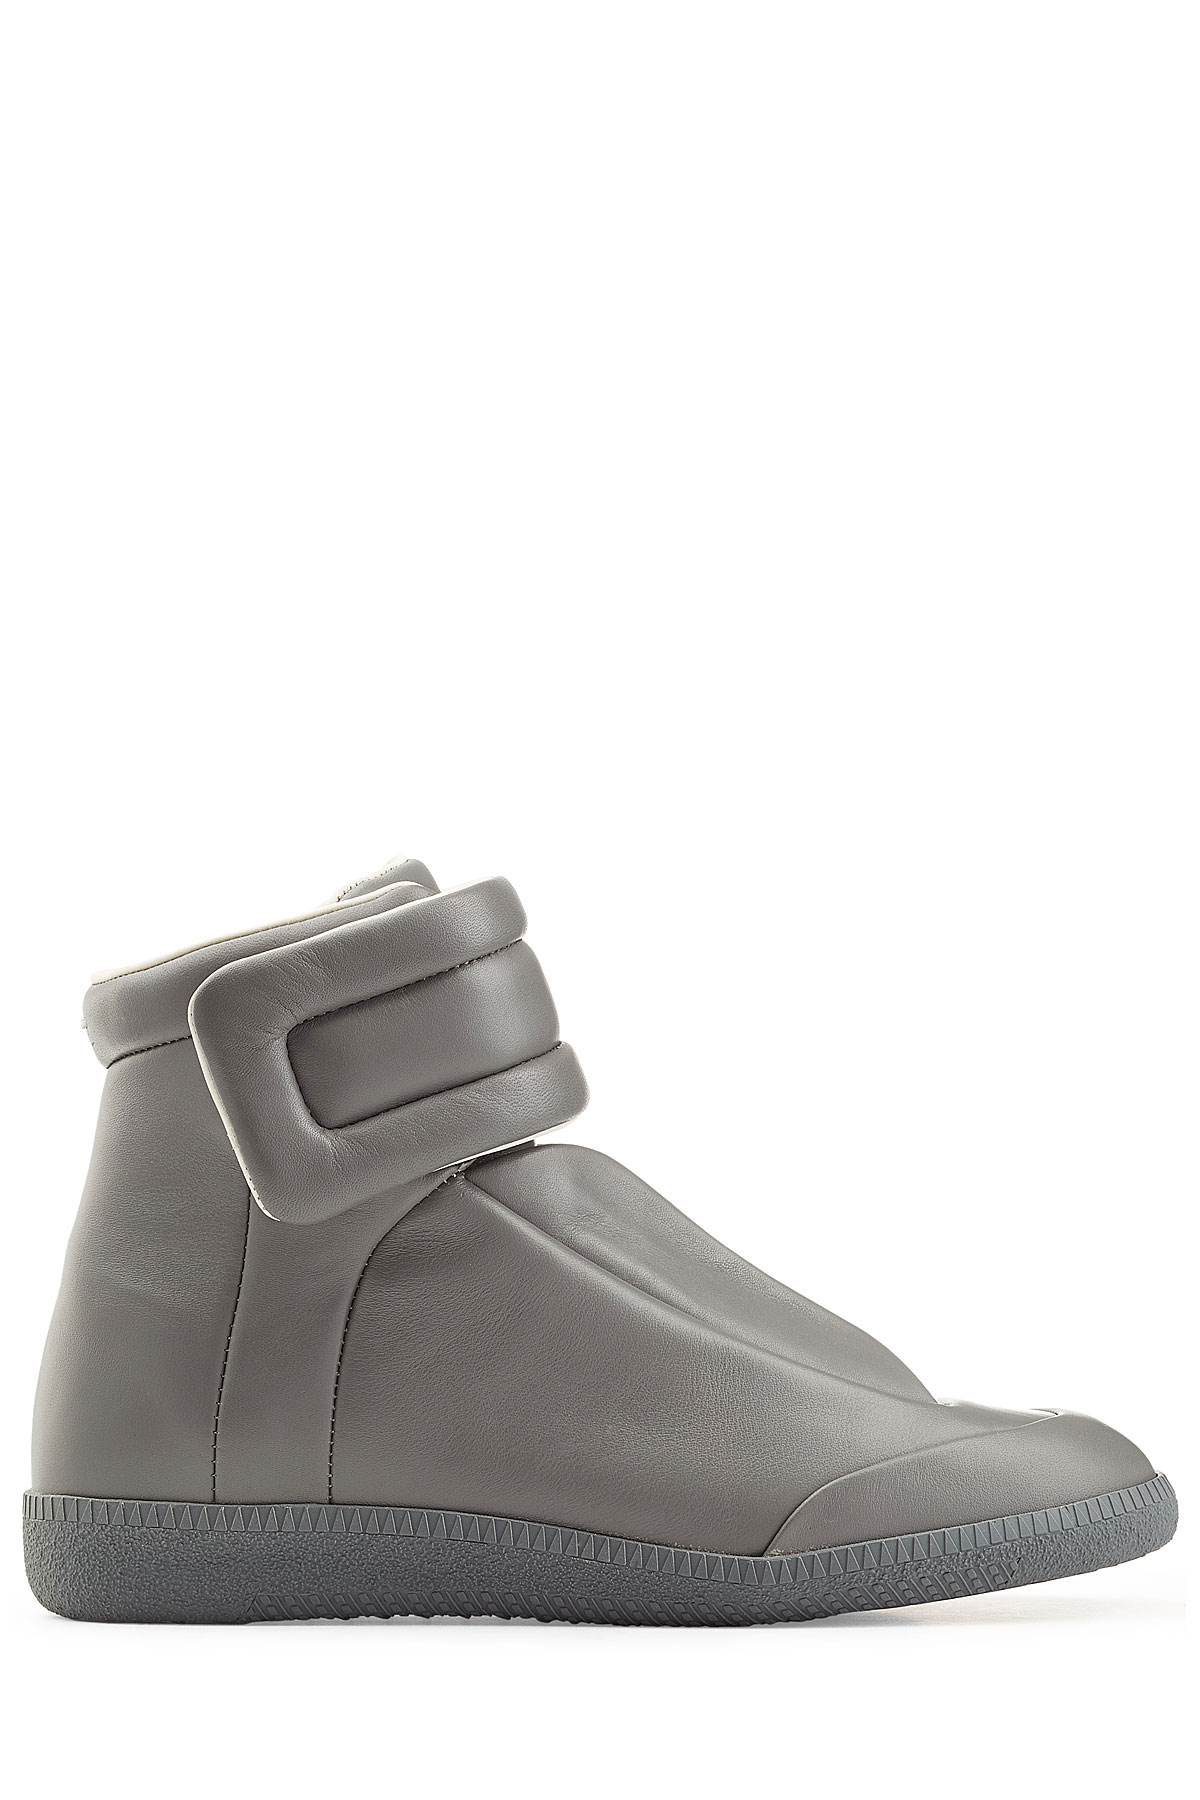 Maison Margiela Future 100 Leather Sneakers